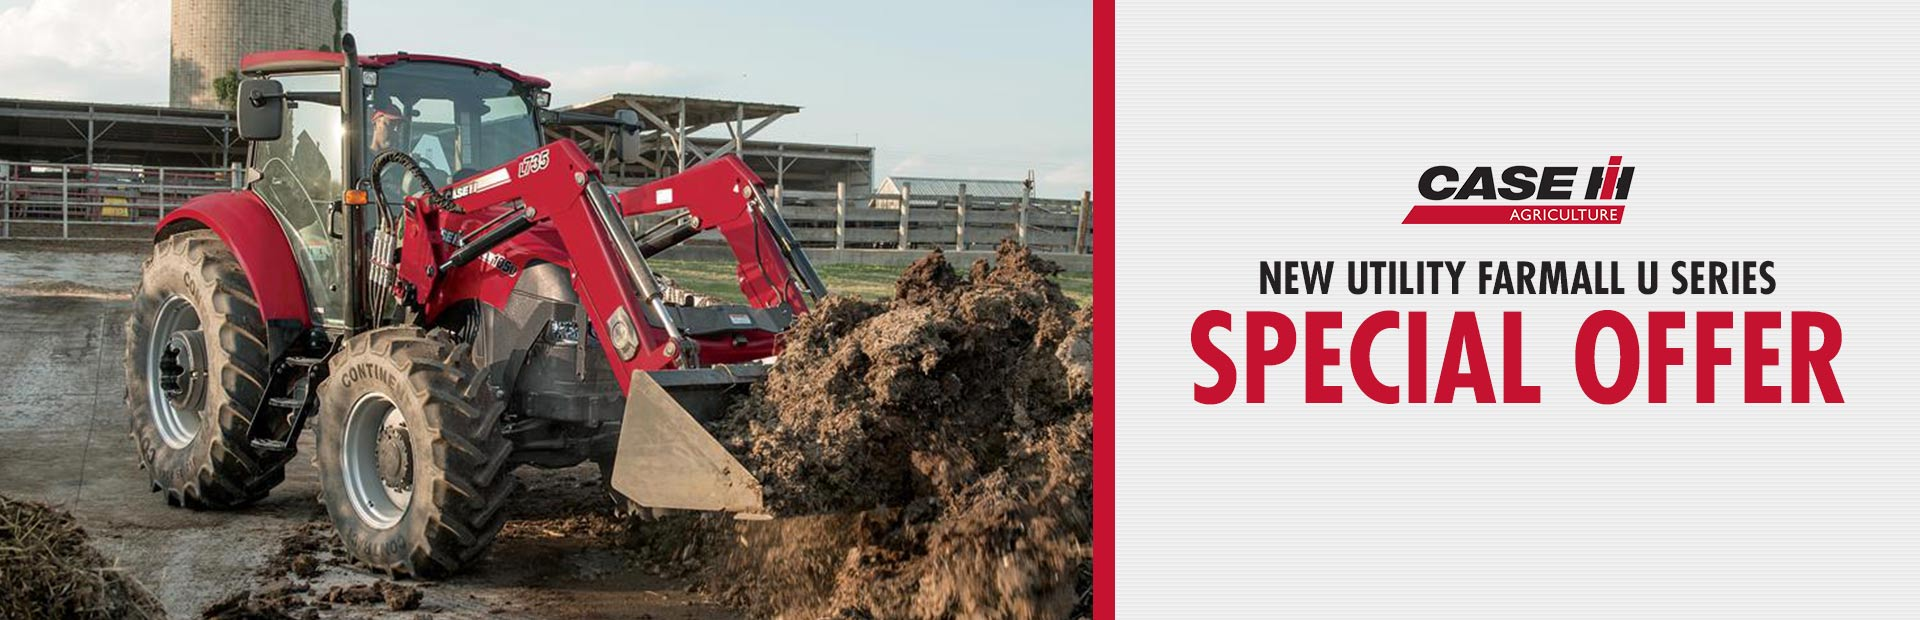 Case IH: New Utility Farmall U Series Special Offer